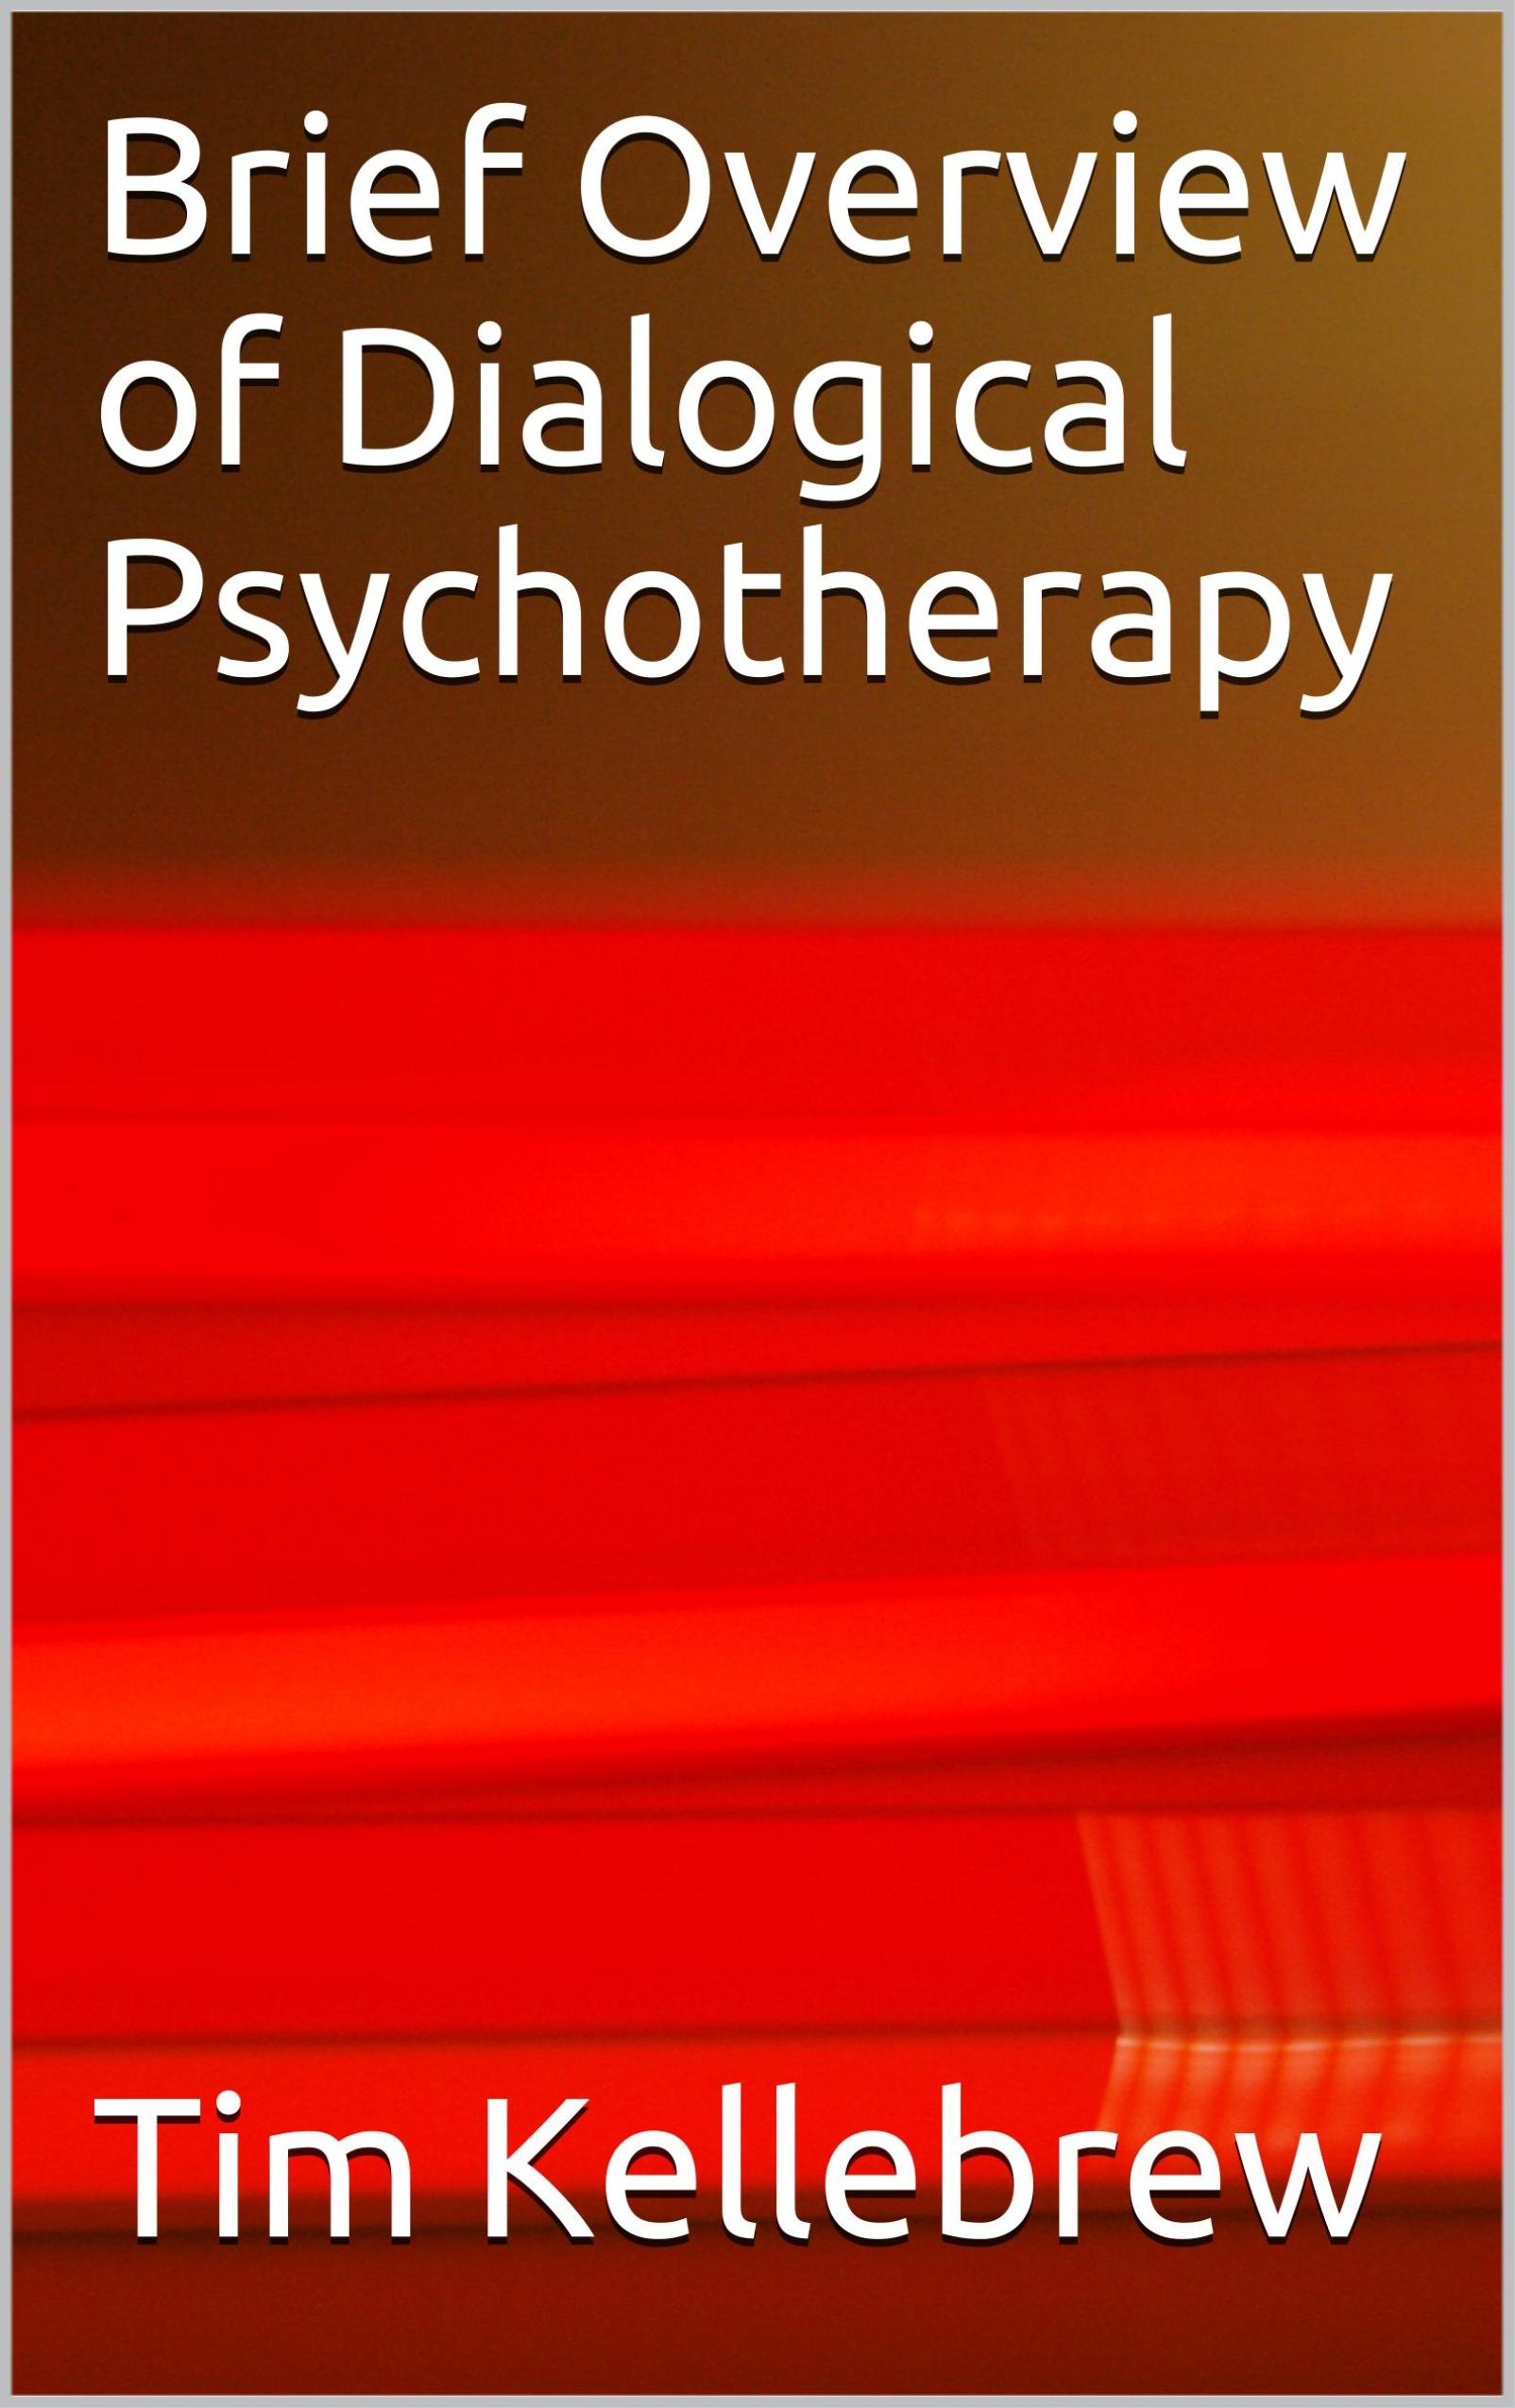 Brief Overview of Dialogical Psychotherapy